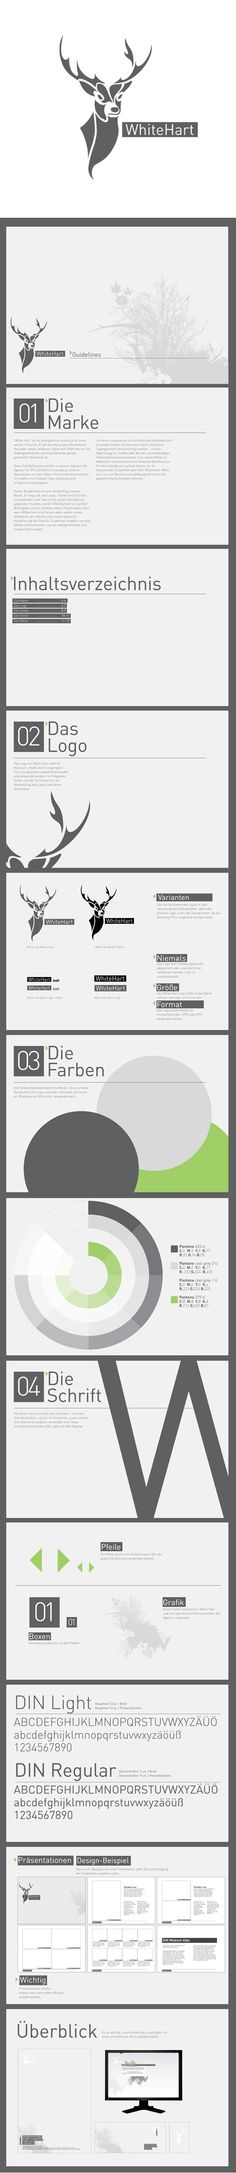 Branding and Guidelines on Branding Served